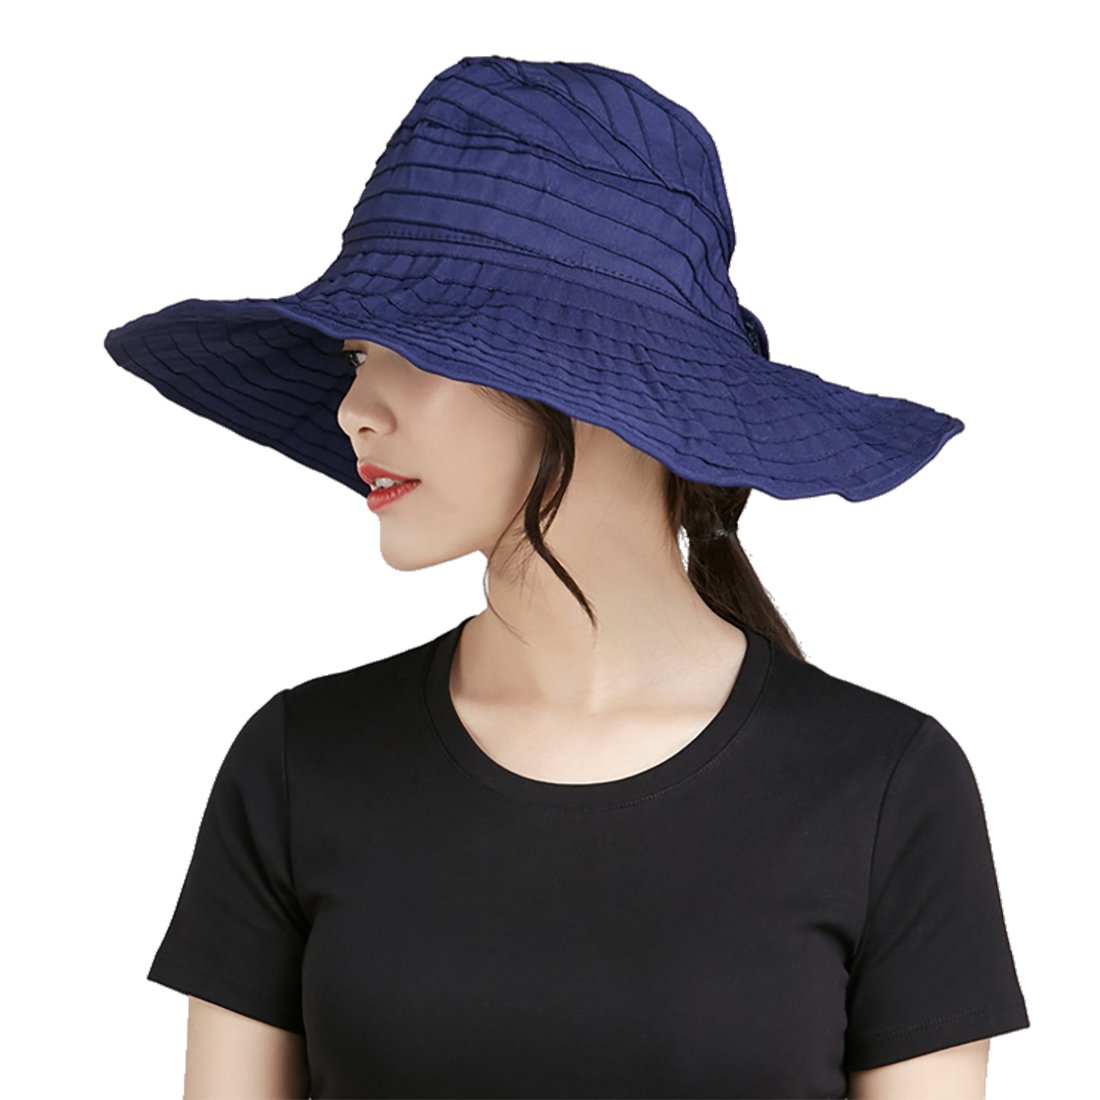 Womens Sun Hat SunJolly Portable Summer Wide Brim UV Protection Floppy Foldable Roll Up Beach Hat and 2PCS Parent-Child Hat for Travel (Kids, Navy)